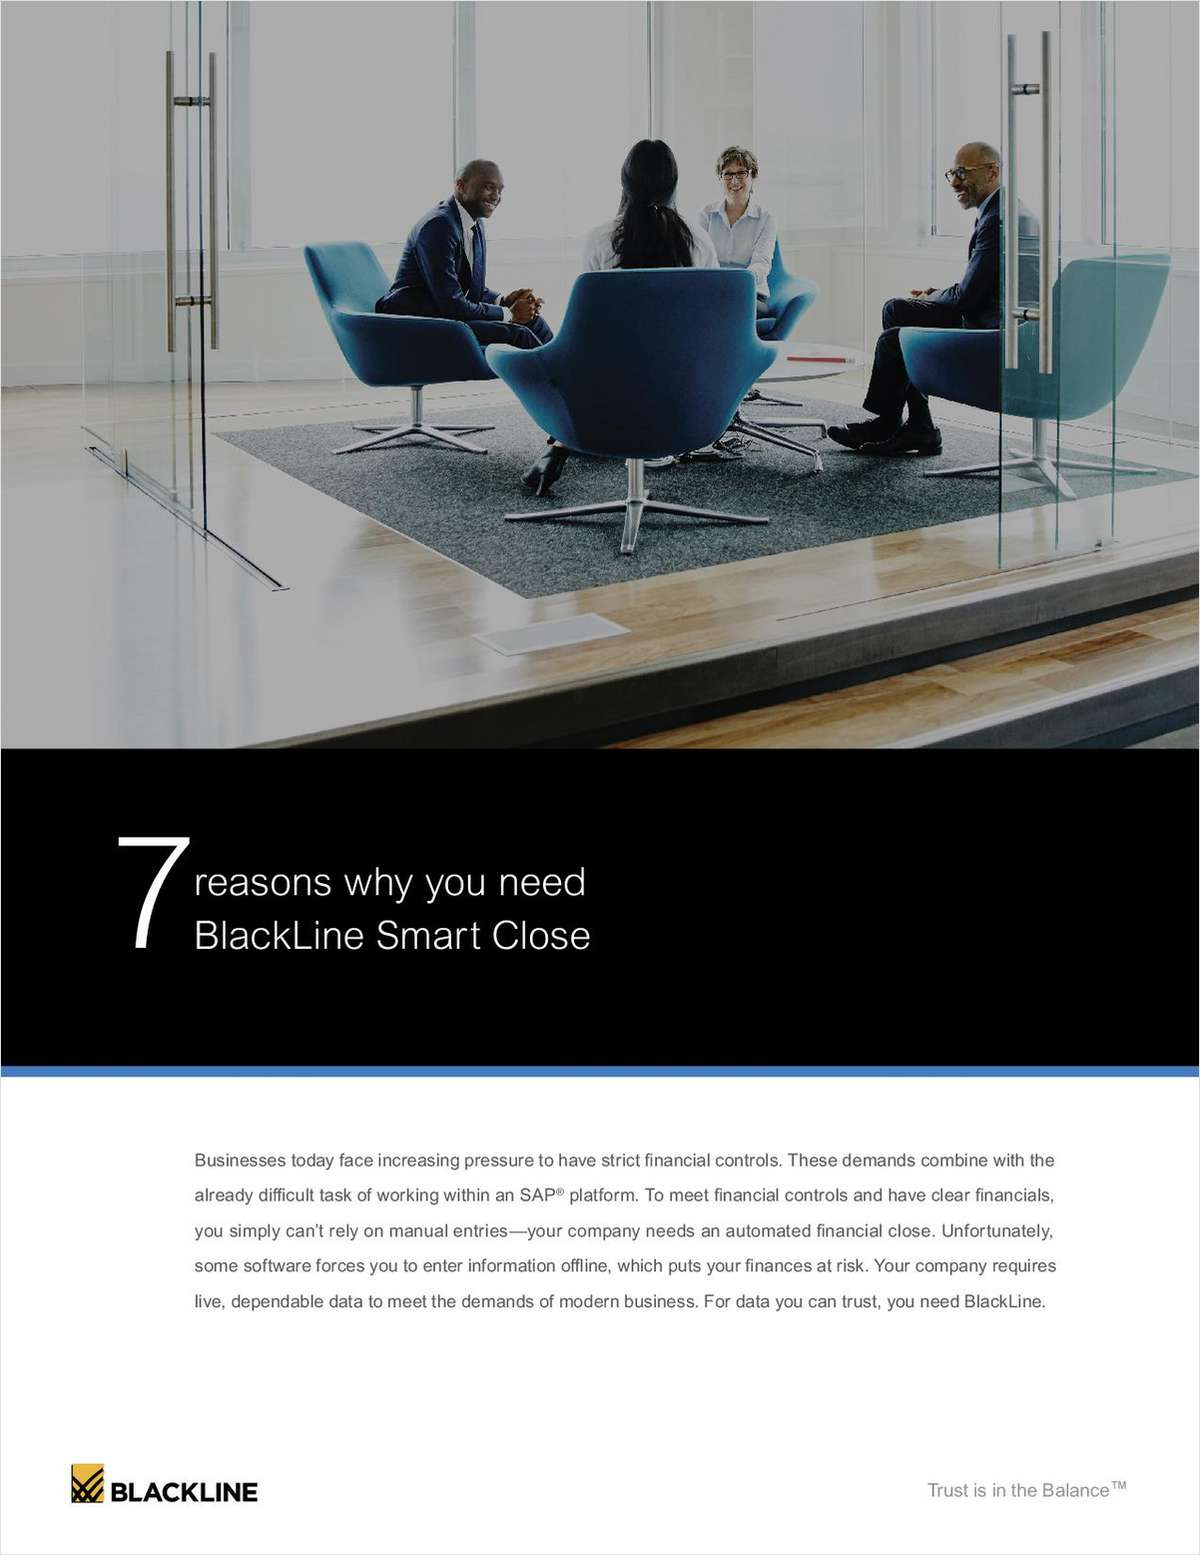 7 Reasons Why You Need BlackLine Smart Close